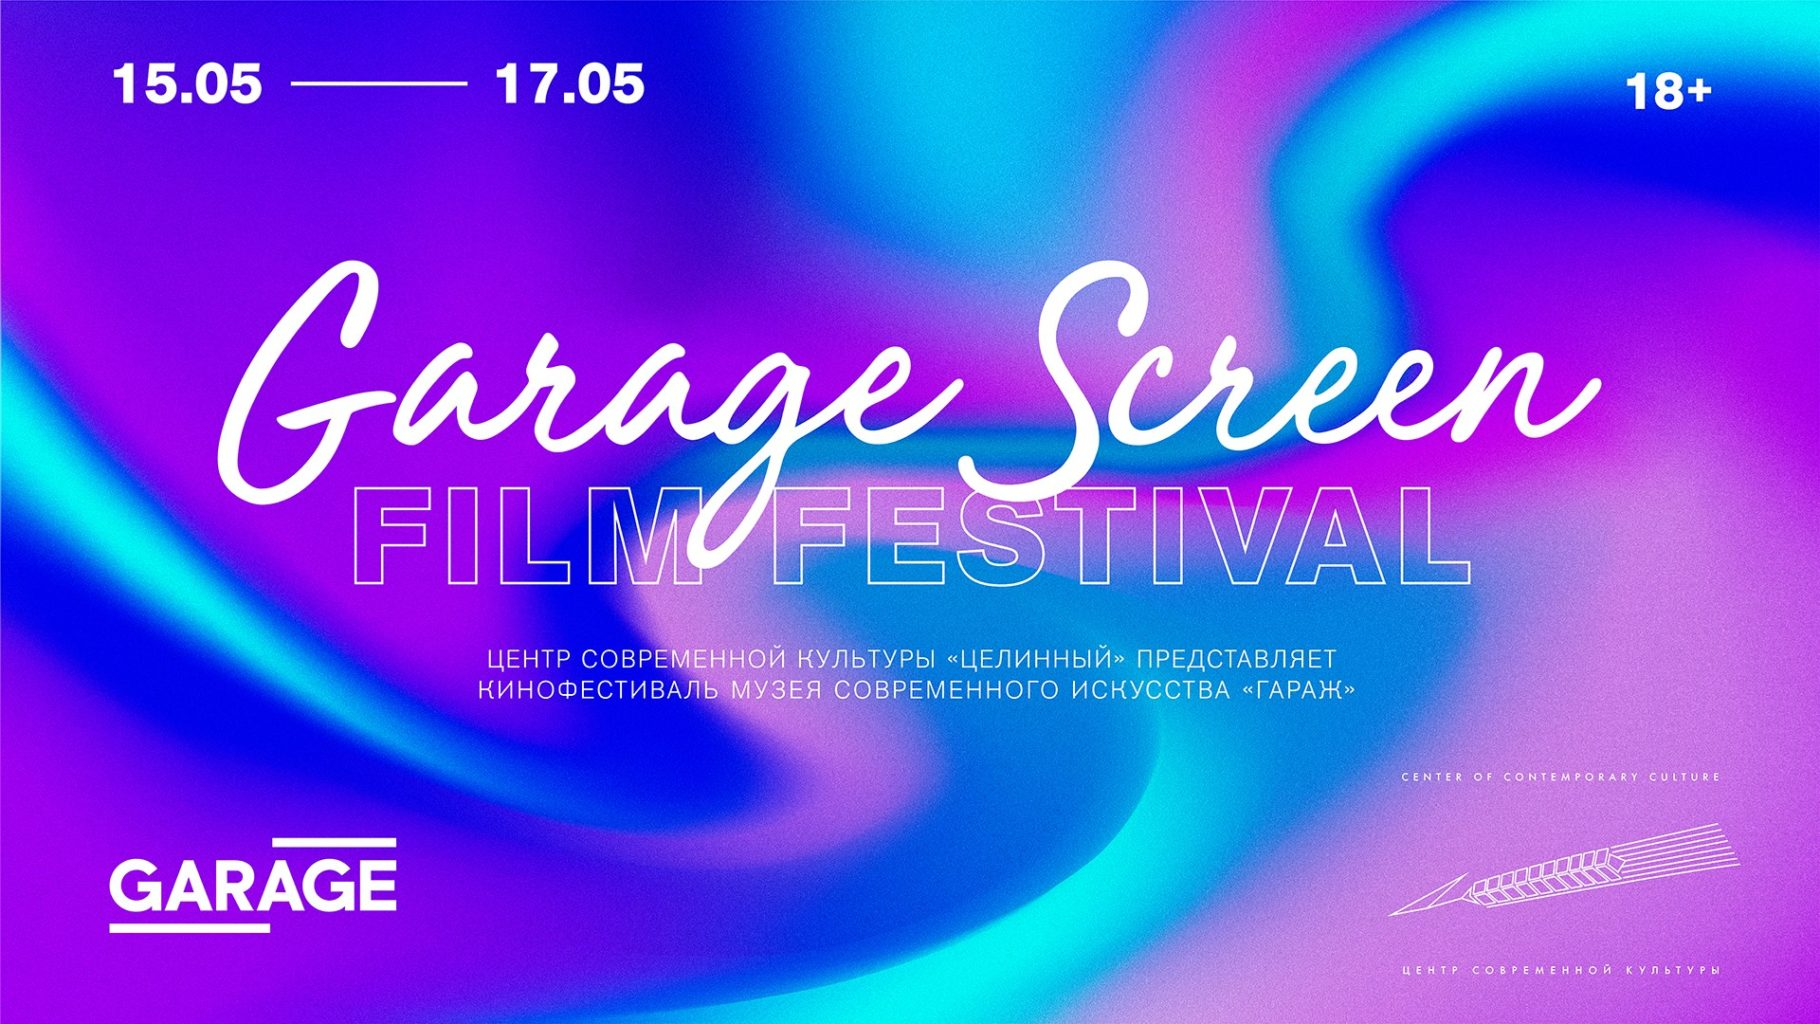 Кинофестиваль Garage Screen Film Festival Баския Кусама Тропический вирус Мадлен Мадлен